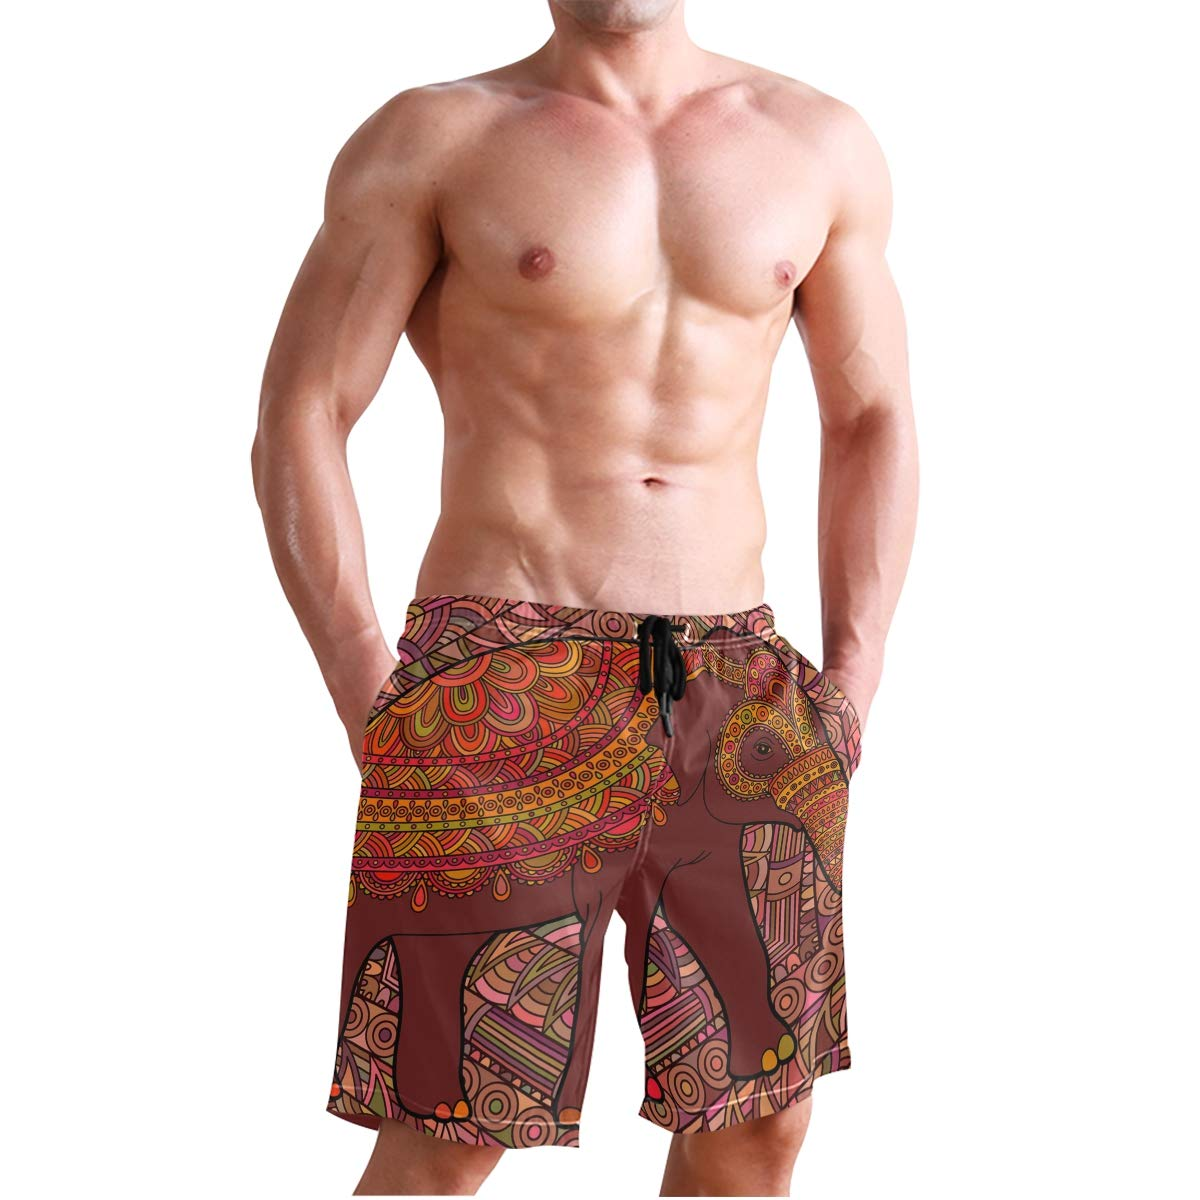 CiCily Men/'s Swim Trunks Brown Elephant Beach Board Shorts Swimming Short Pants Running Sports Surffing Shorts